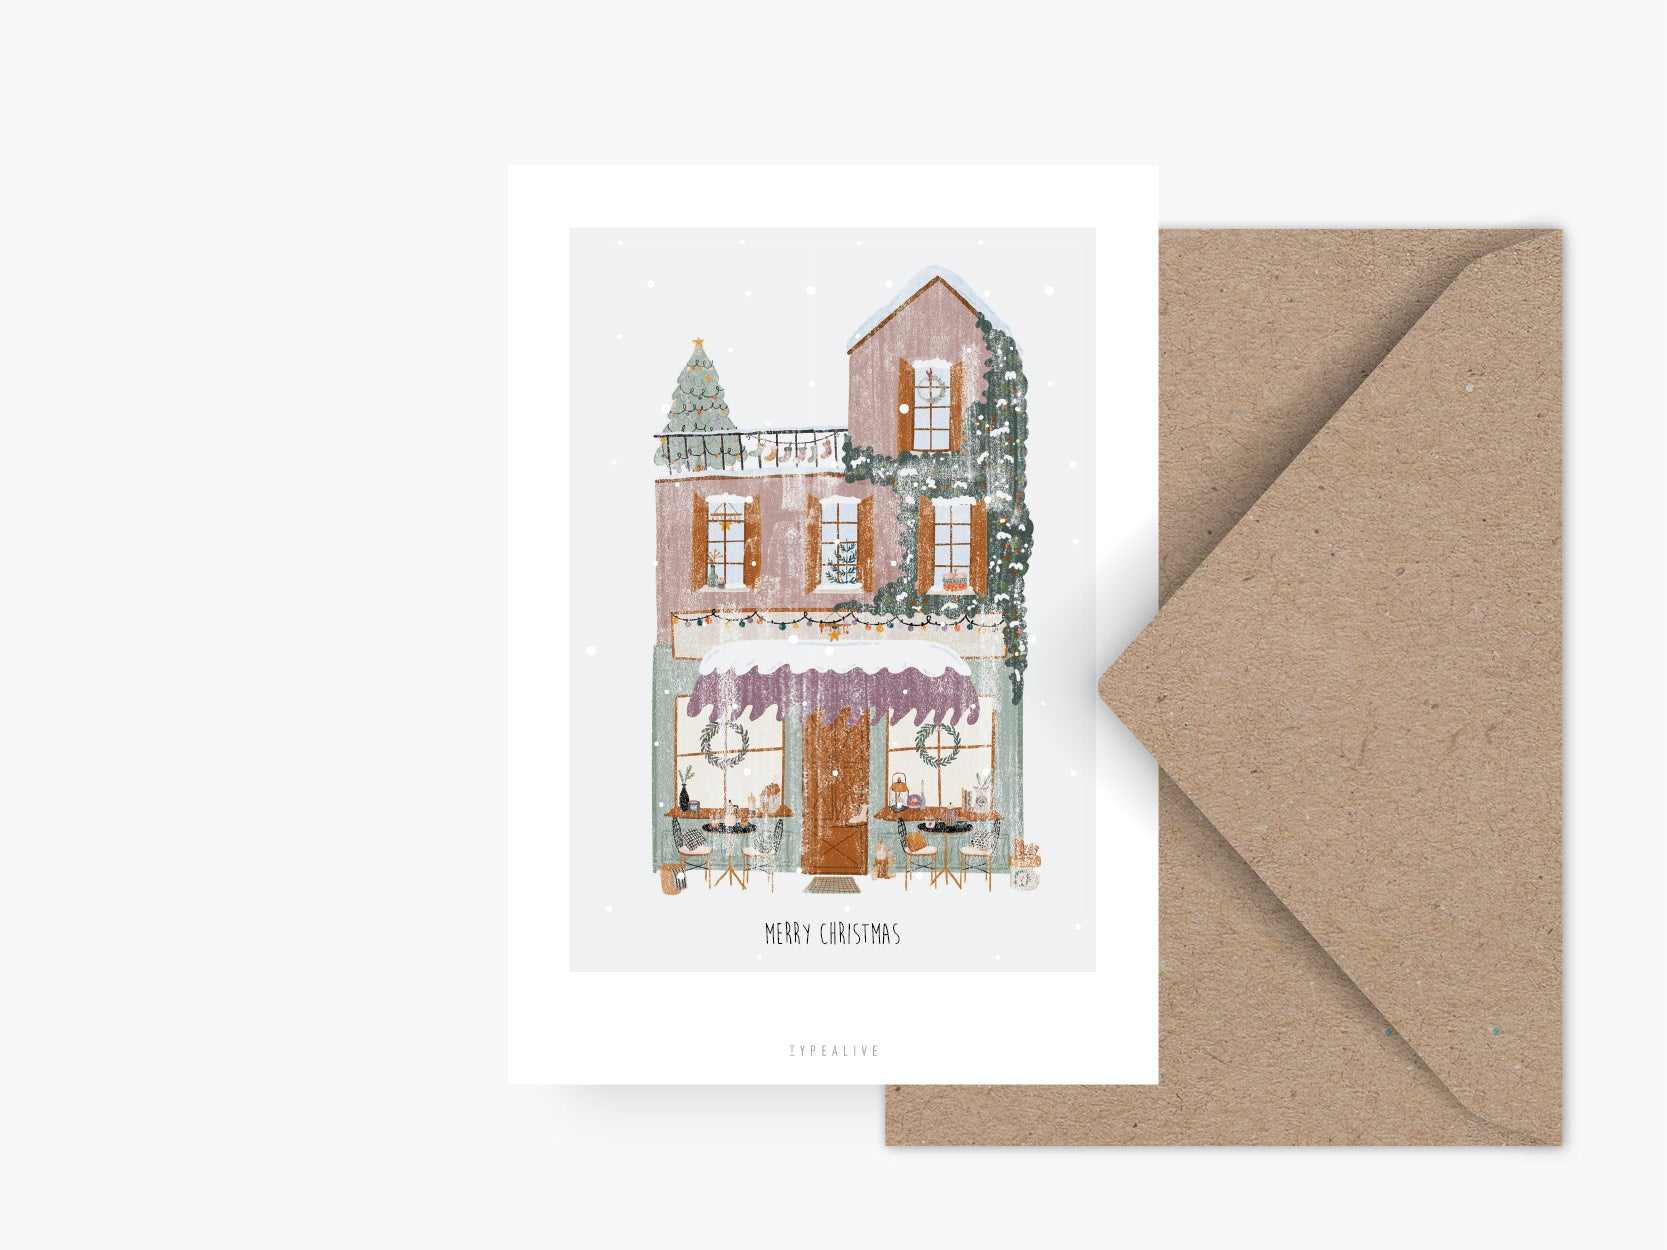 Postkarte / Winter Wonder Shops No. 4